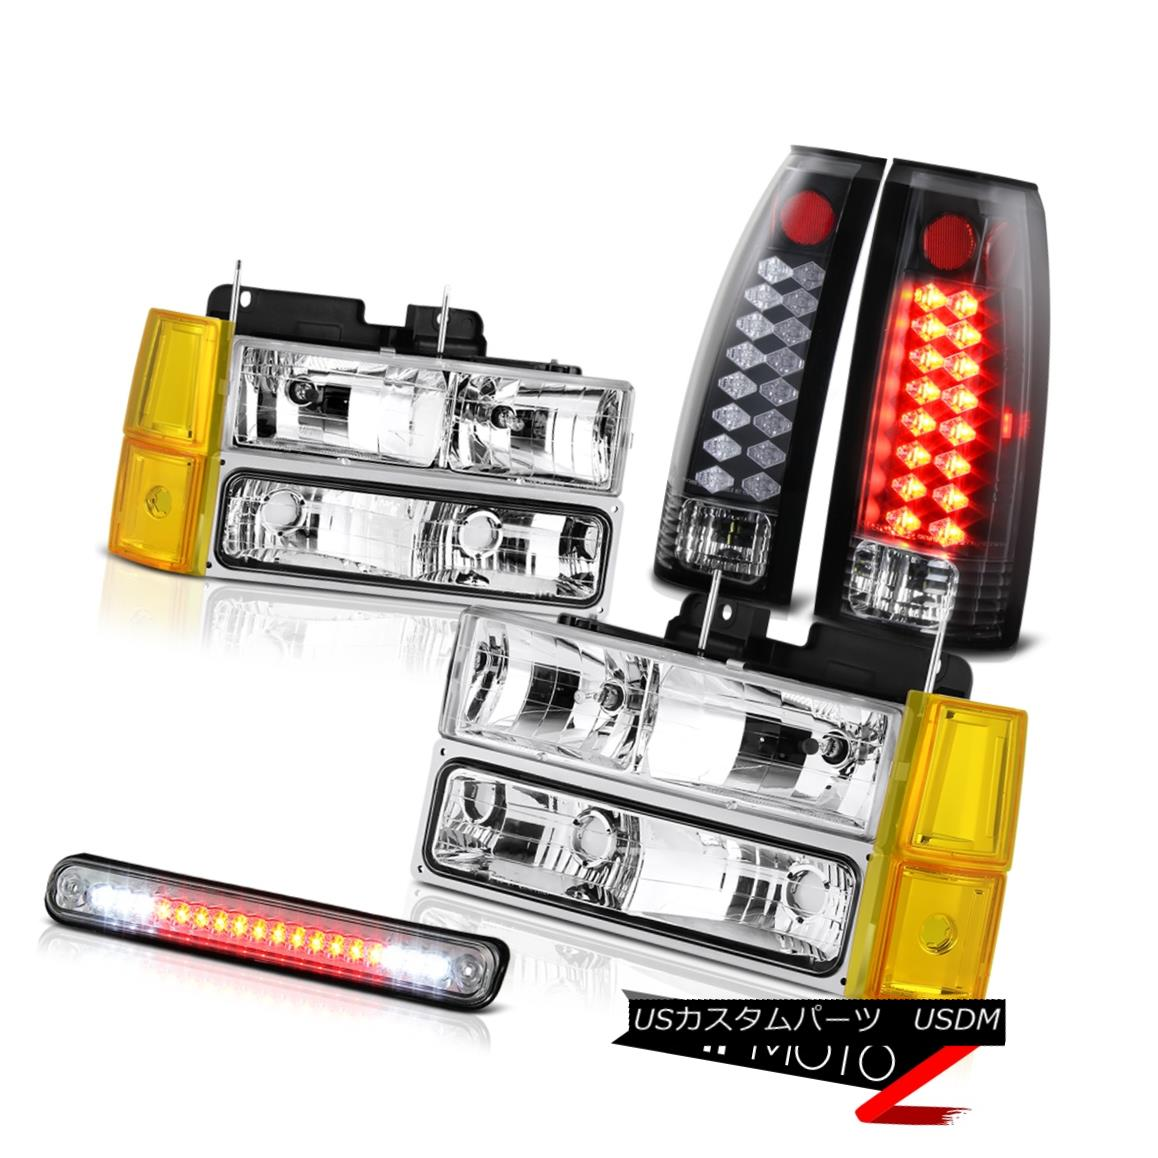 テールライト 1994-1998 Sierra 1500 Headlights Corner High Stop Lamp Tail Lamps